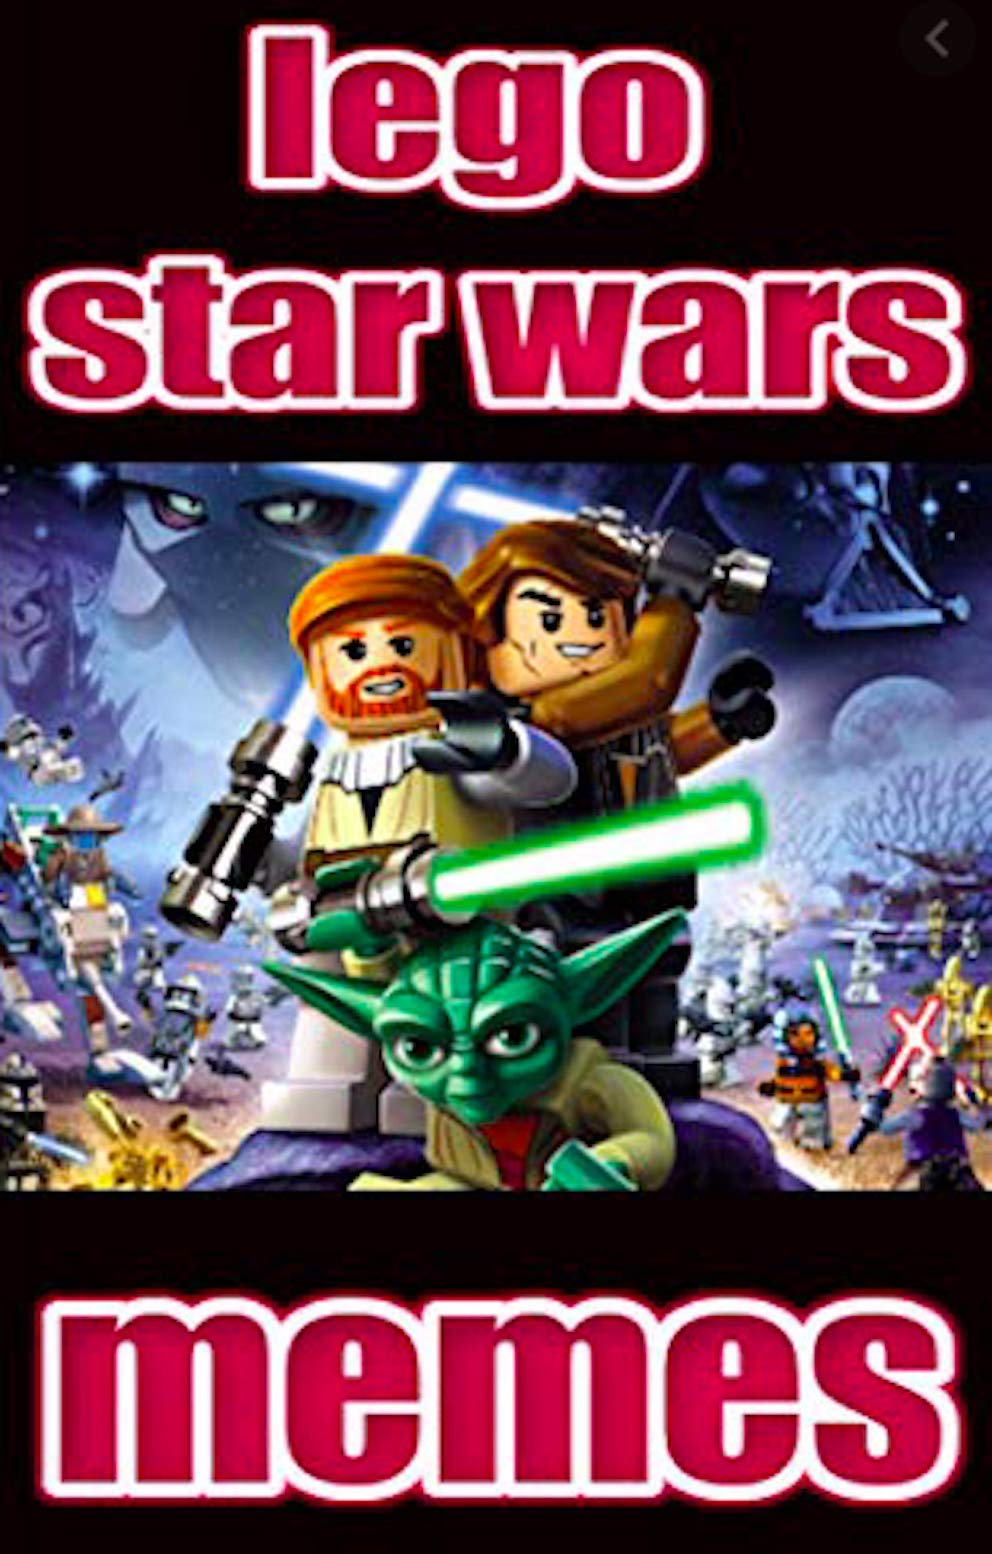 Lego S Wars Funny Jokes: Hilarious Humour, Funny Jokes & Meems With Lego S Wars